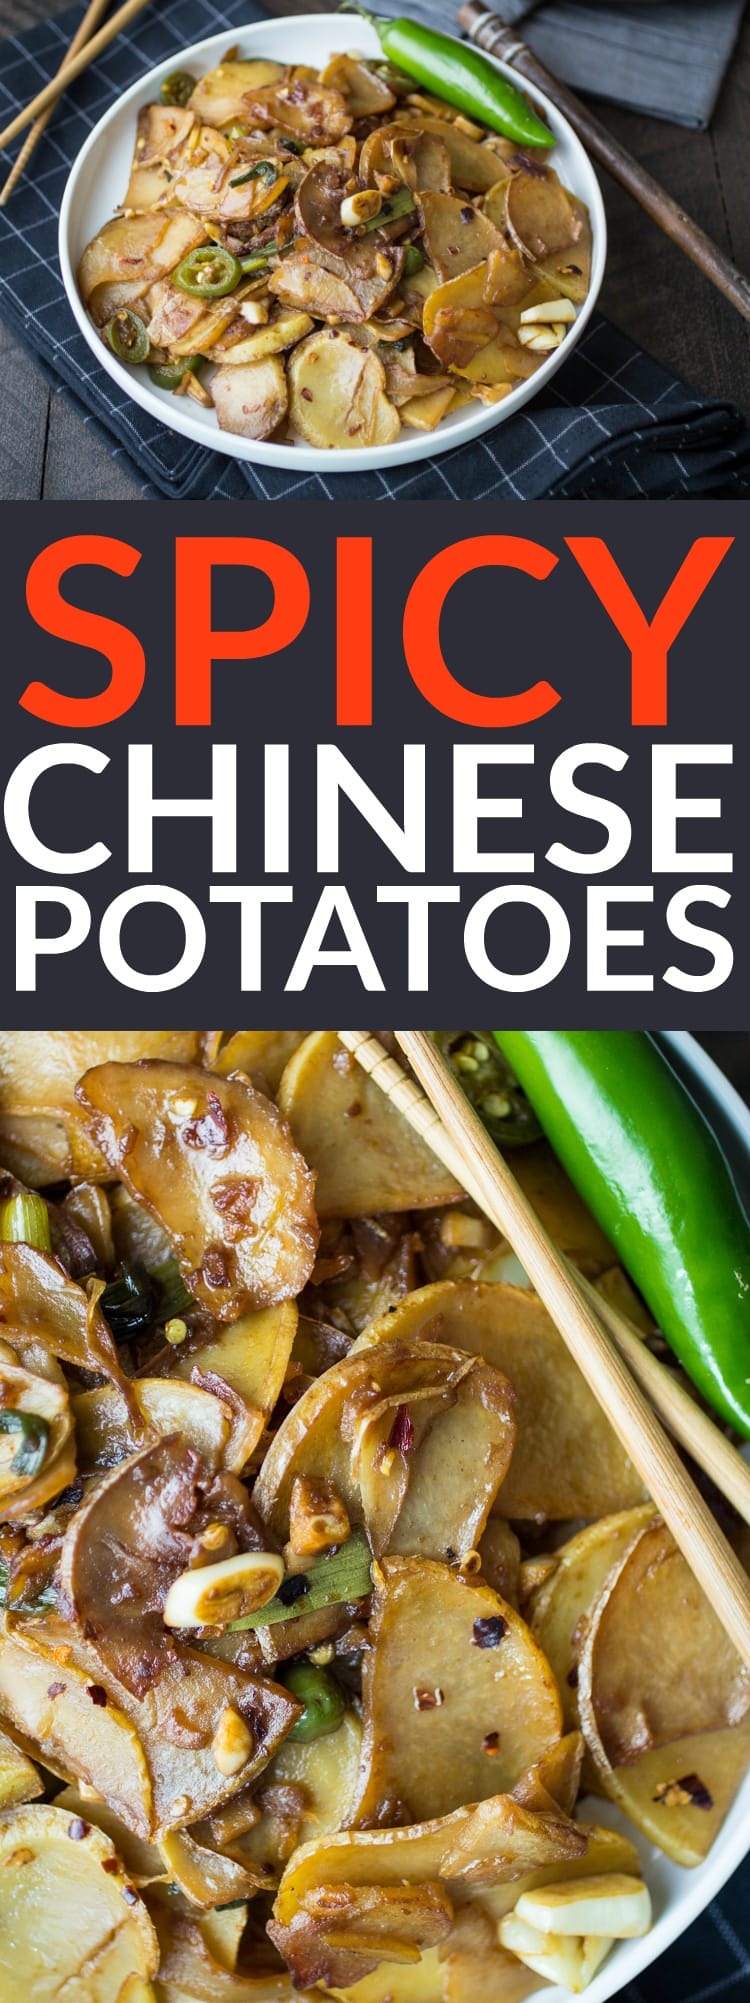 Spicy chinese potatoes the wanderlust kitchen spicy chinese potatoes are the perfect easy side dish for chinese take out night forumfinder Choice Image